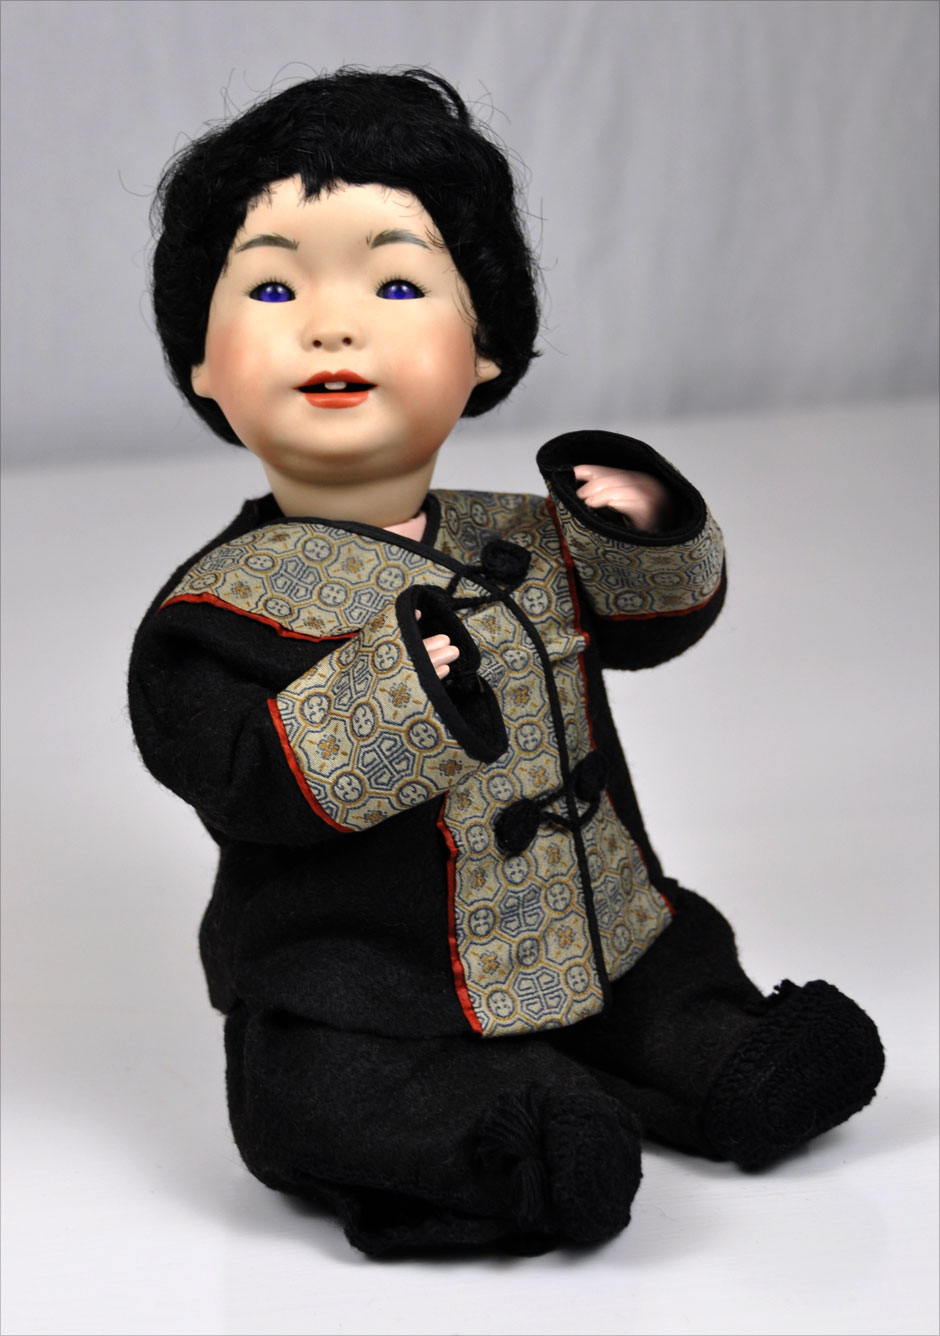 Antique Asian Reproduction Doll Porcelain 5